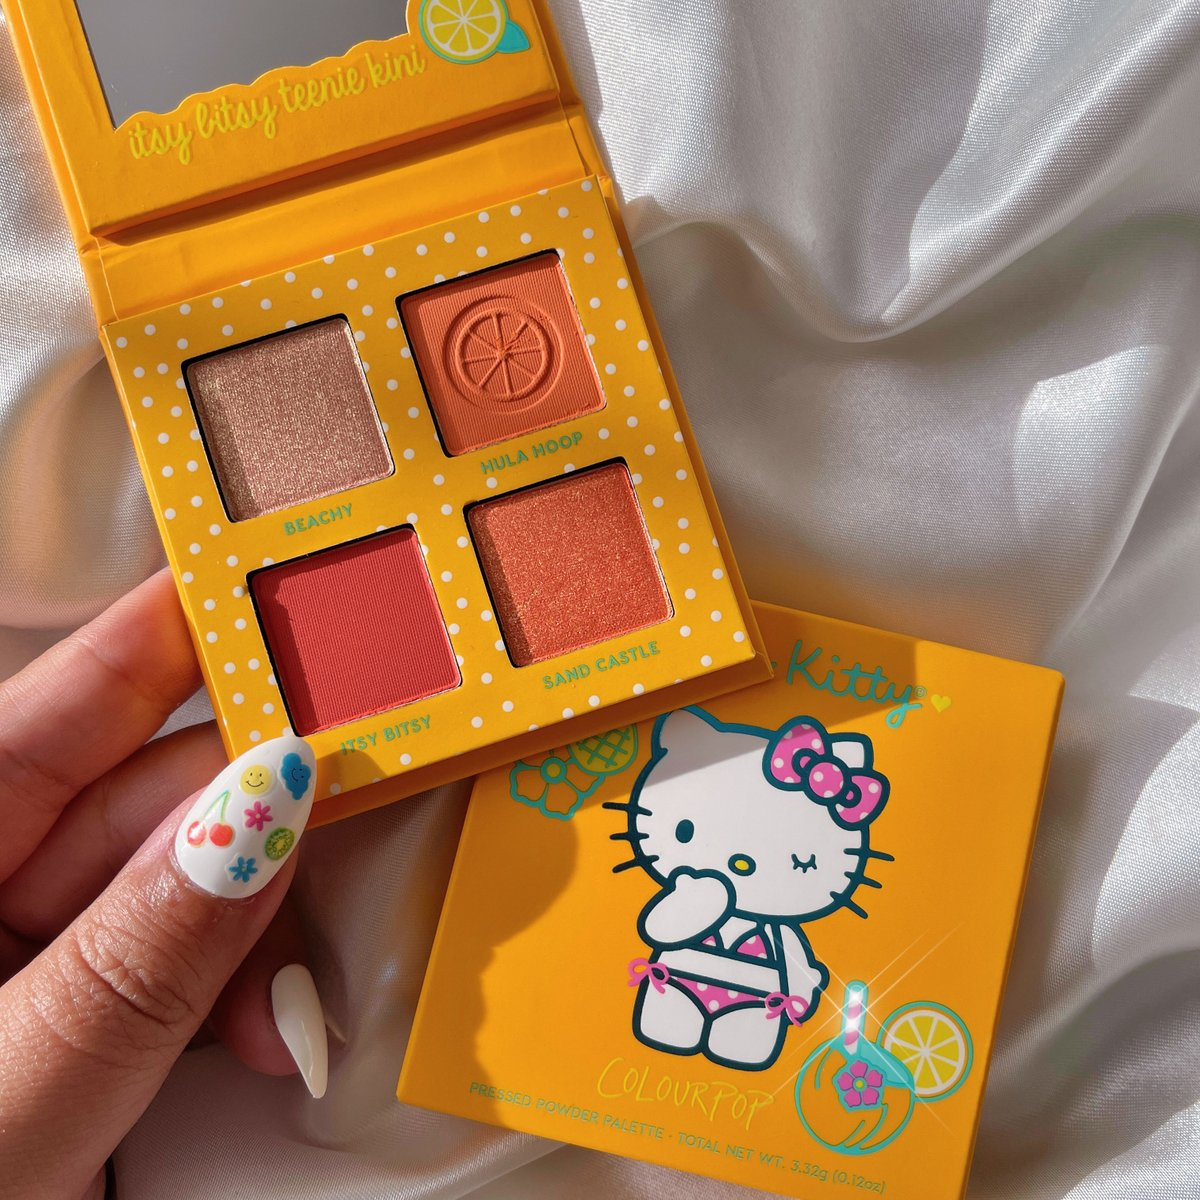 tropical yumminess!!! ✨🍍🍰 what palettes from the *NEW* Hello Kitty x ColourPop collection are your new summer besties? 👇  The @hellokitty Tropical Escape Collection launches 6/17 💫  IG | lapetitechicmommy #HelloKittyXColourPop https://t.co/nfhzrNsLtL